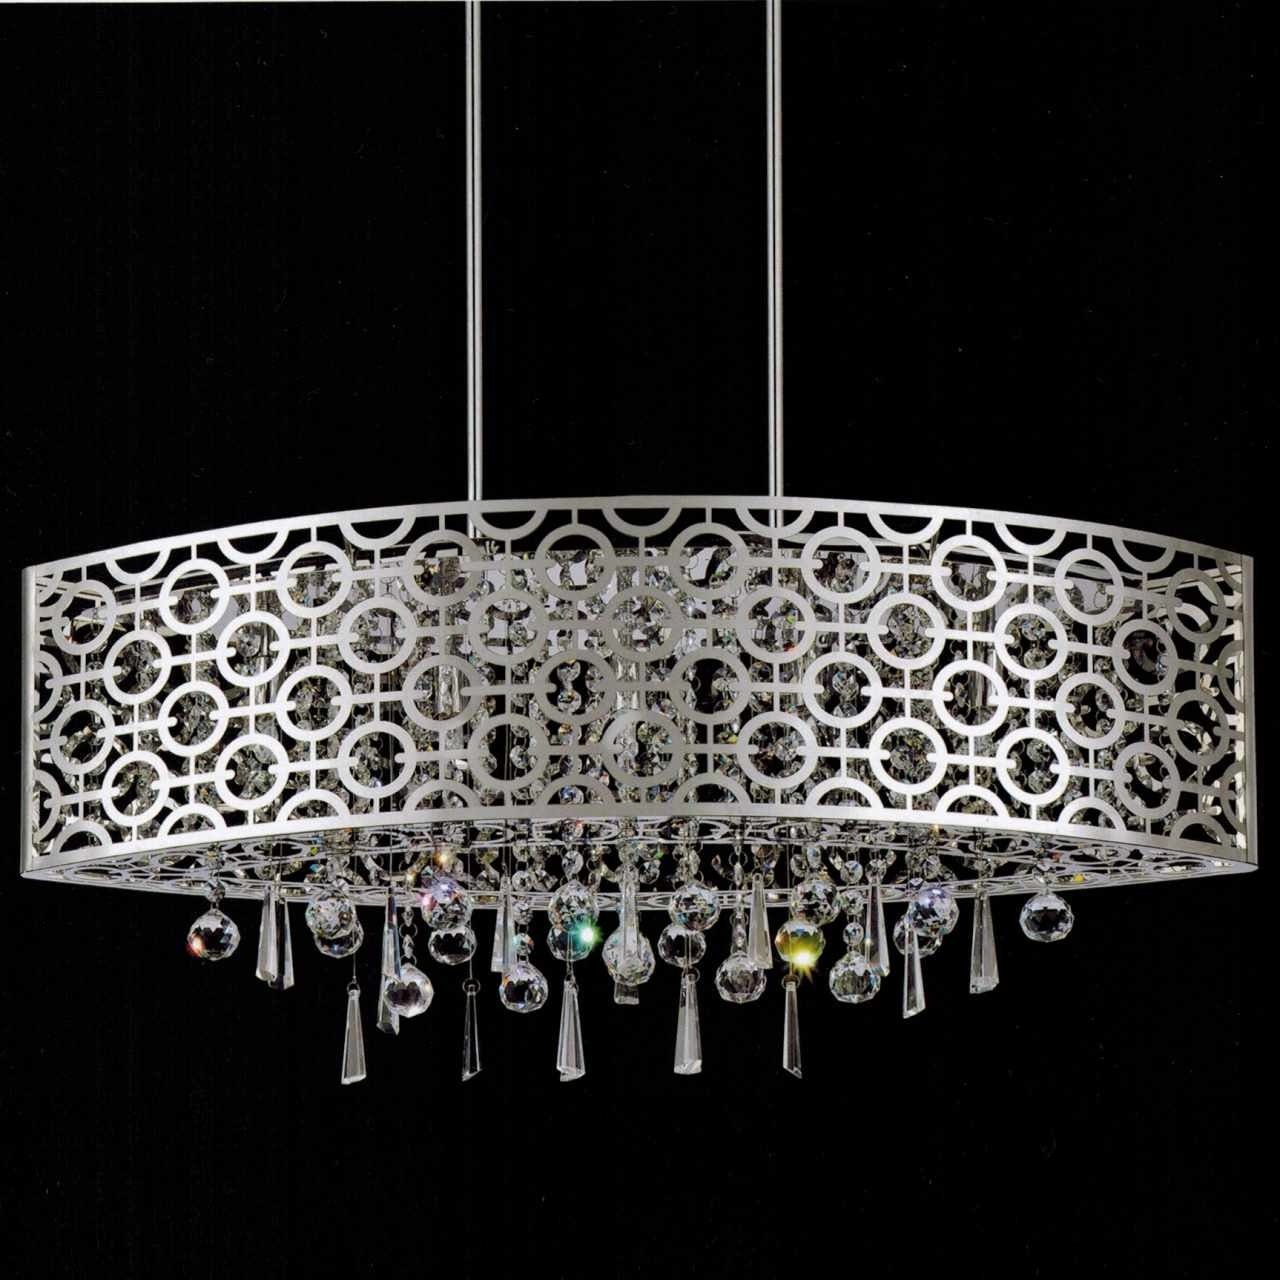 Long Hanging Chandeliers Throughout Favorite Brizzo Lighting Stores (View 9 of 15)